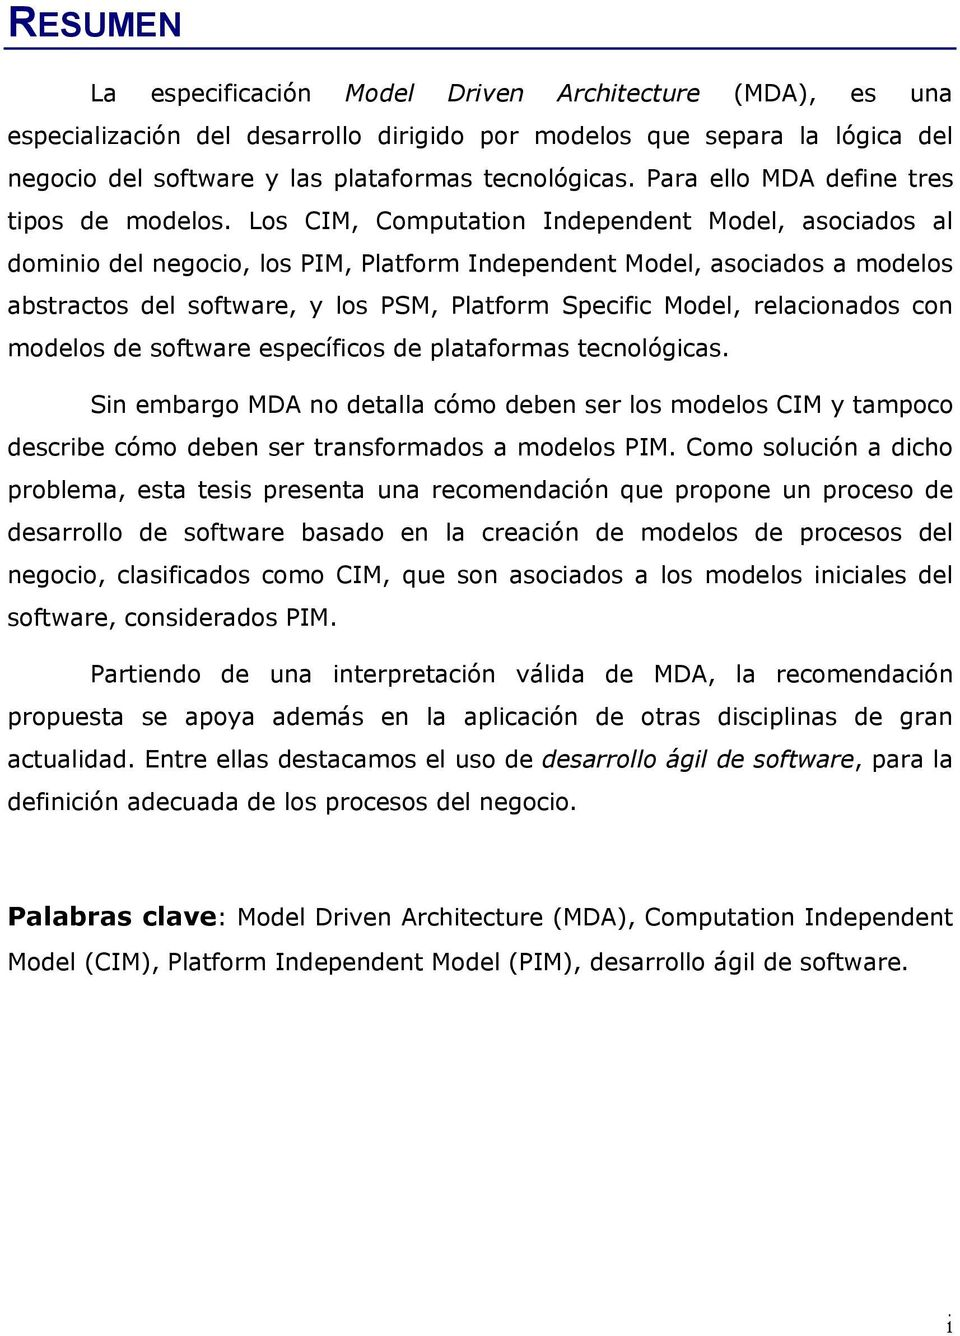 Los CIM, Computation Independent Model, asociados al dominio del negocio, los PIM, Platform Independent Model, asociados a modelos abstractos del software, y los PSM, Platform Specific Model,